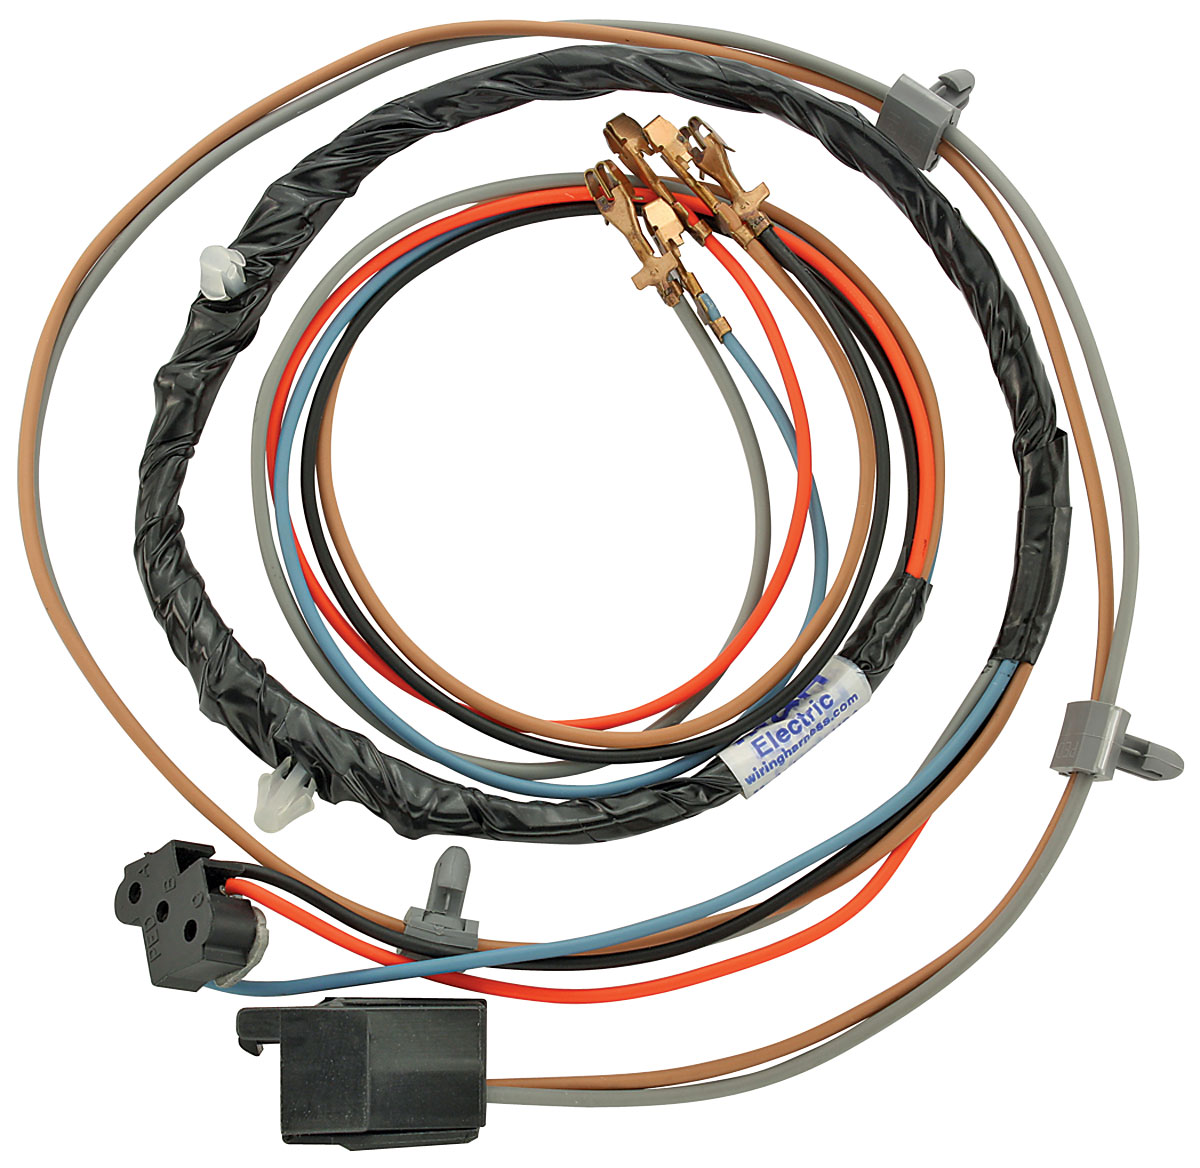 Window Wiring Harness 1984 Monte Carlo Camaro Pt Astro Van Mh 1978 82 Door Lock Power Center Crossover W On